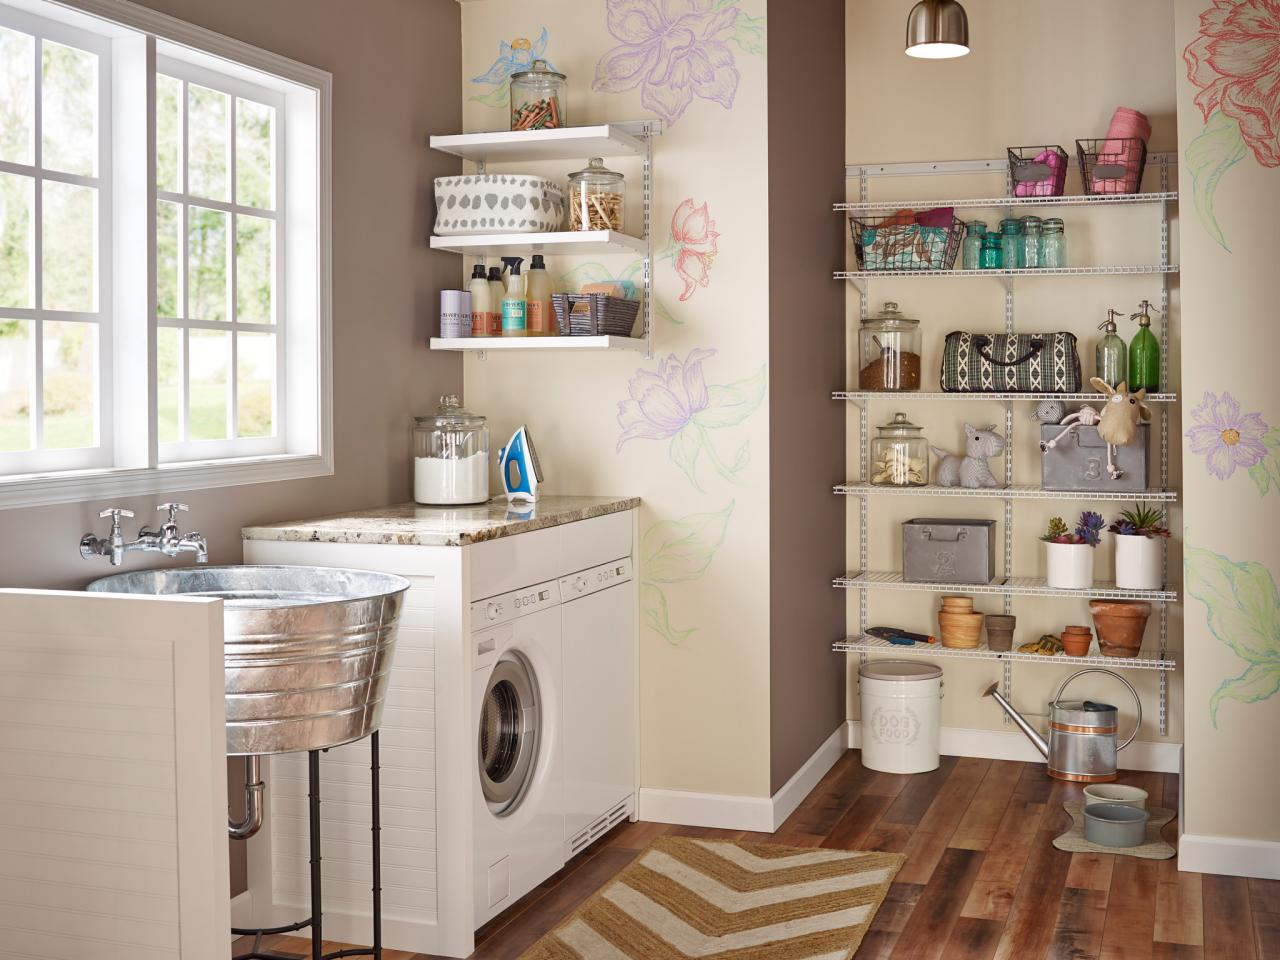 10 clever storage ideas for your tiny laundry room hgtvs add shelving to unused corners amipublicfo Image collections